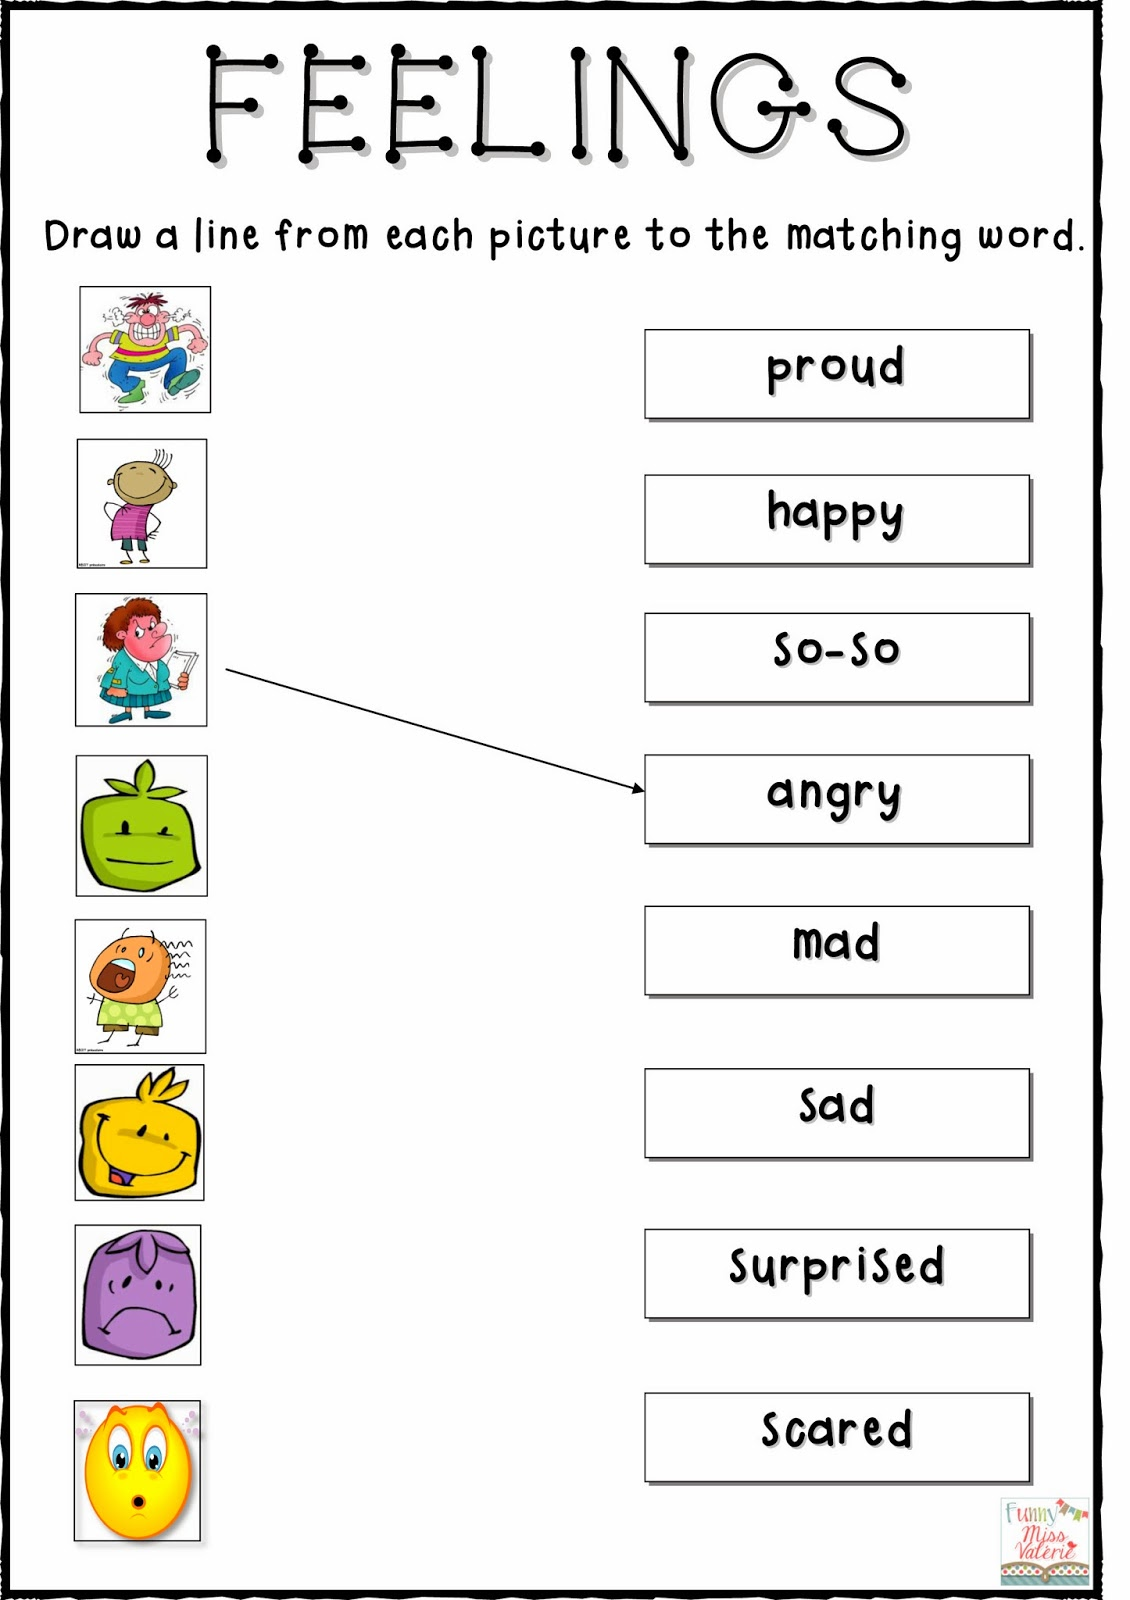 Feelings And Emotions Worksheet Free Printable Worksheets